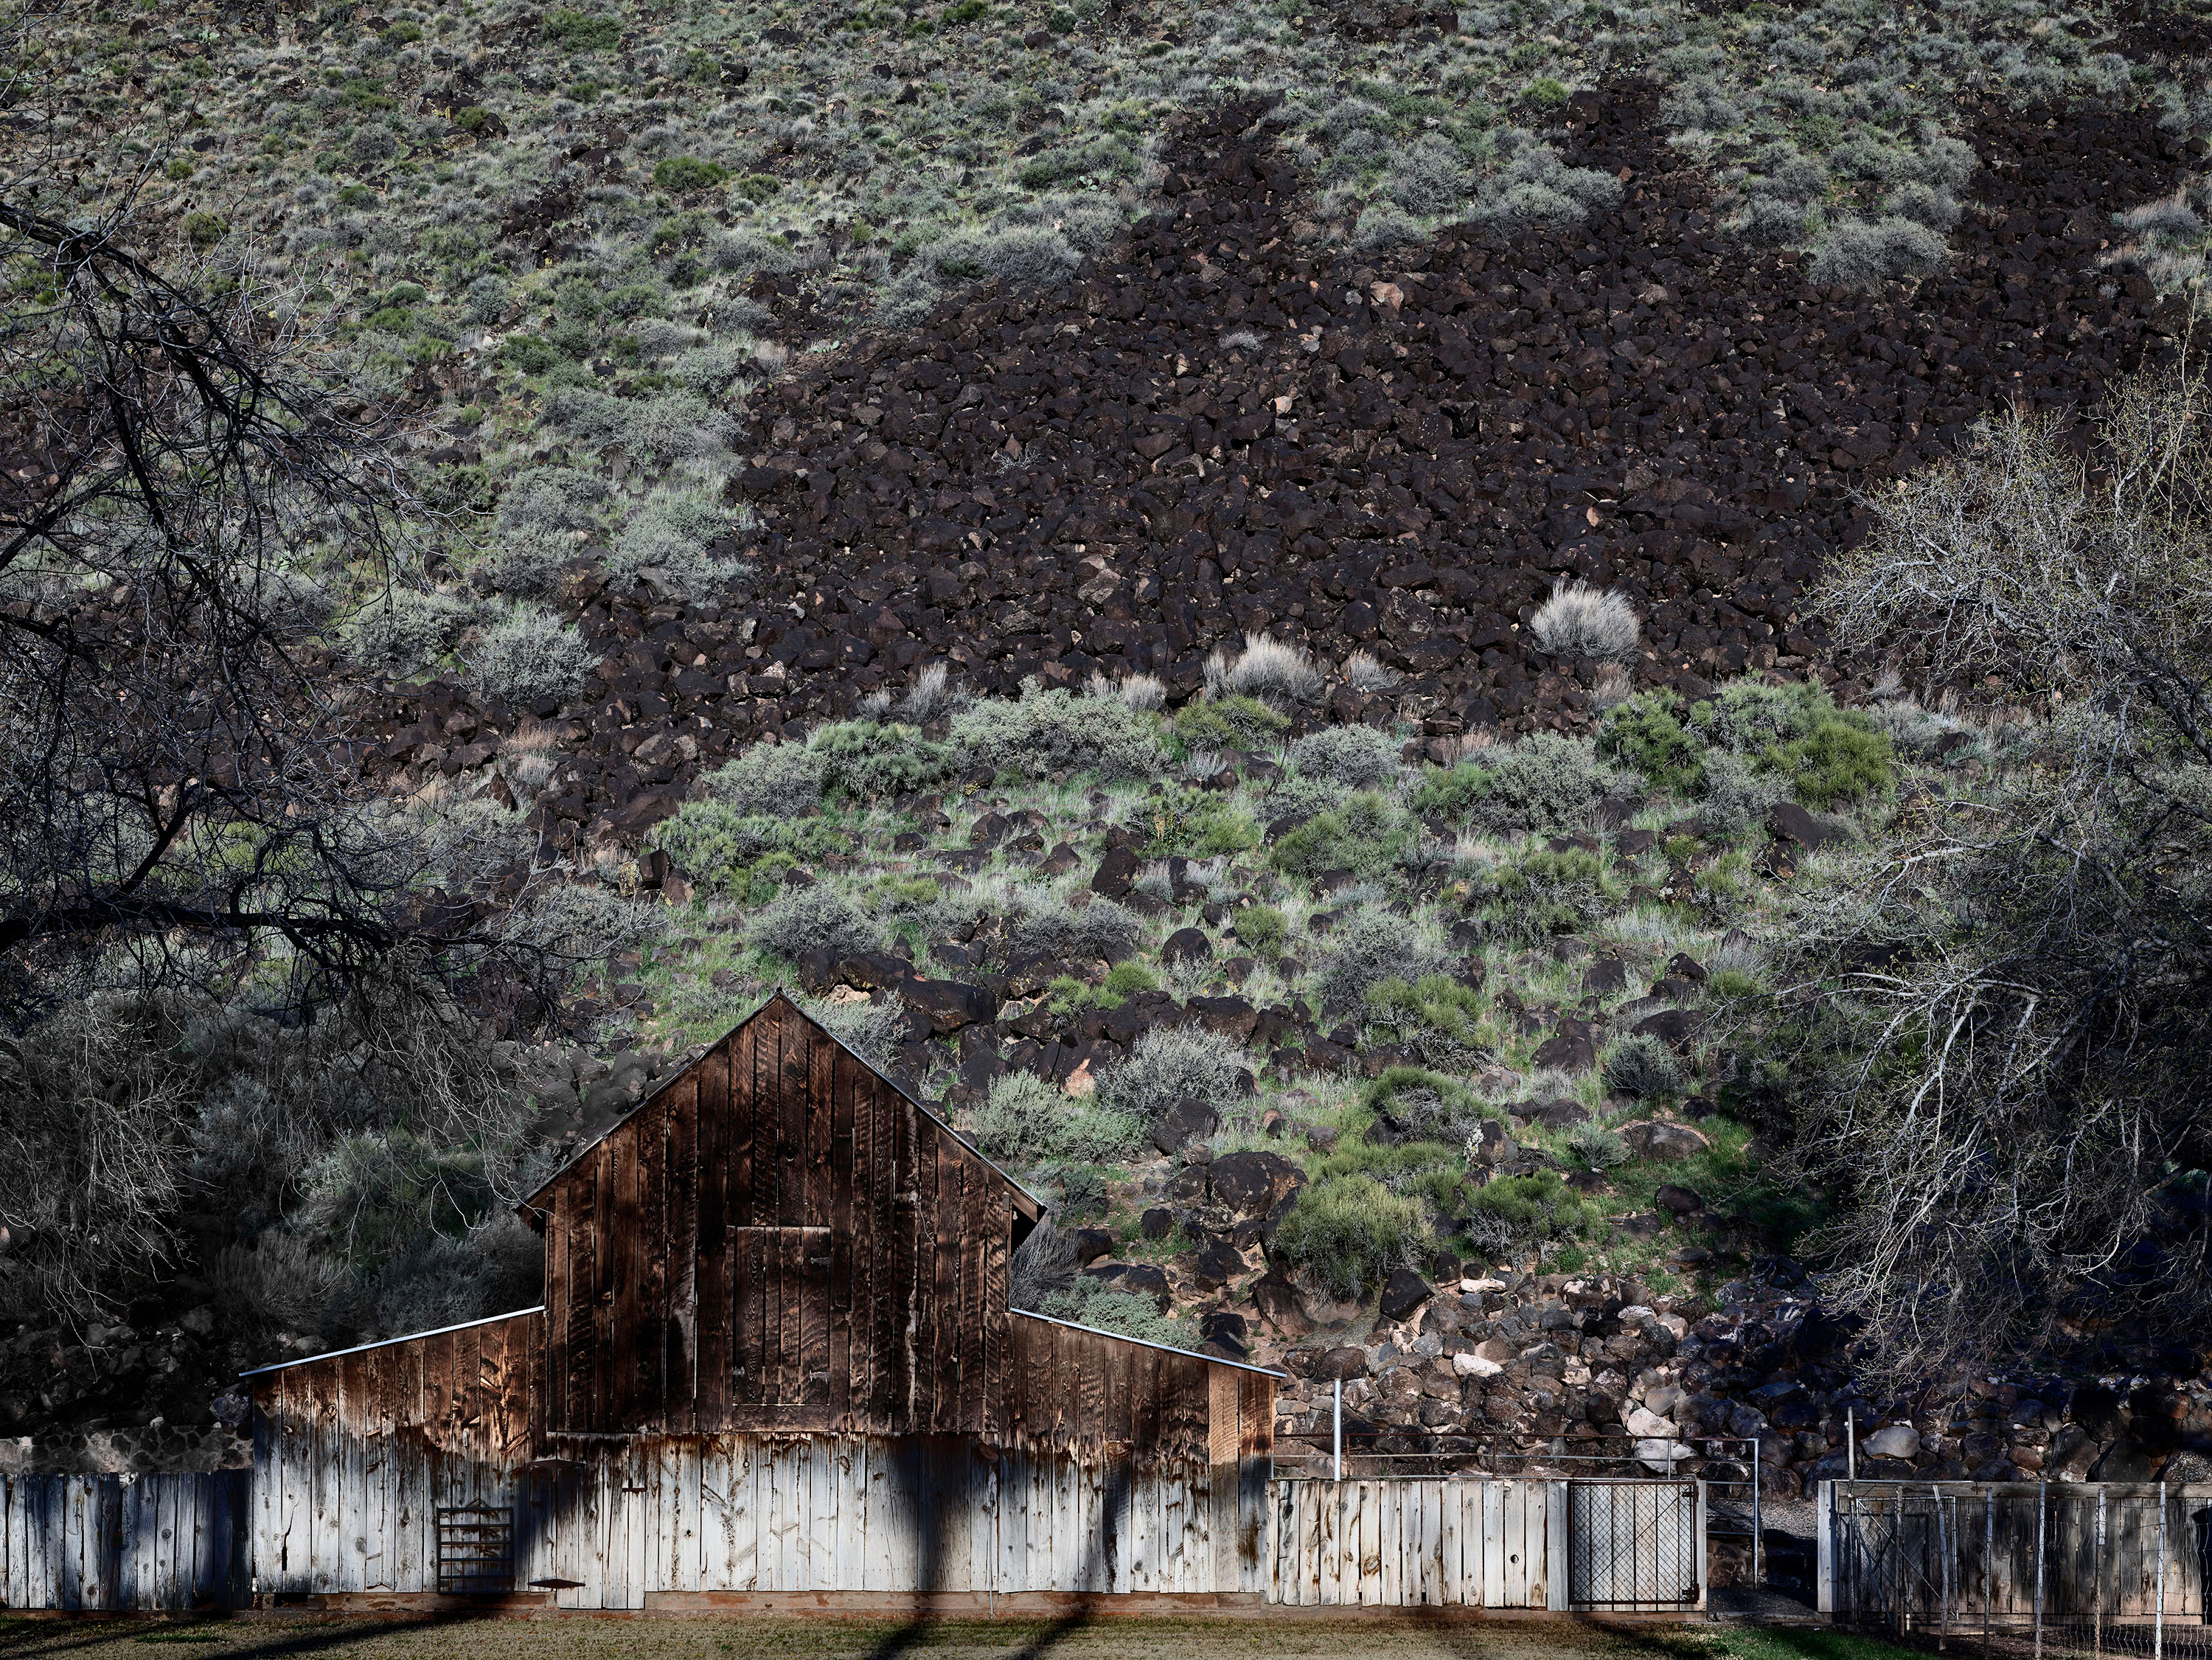 Barn Wall with Lava ©Burk Uzzle